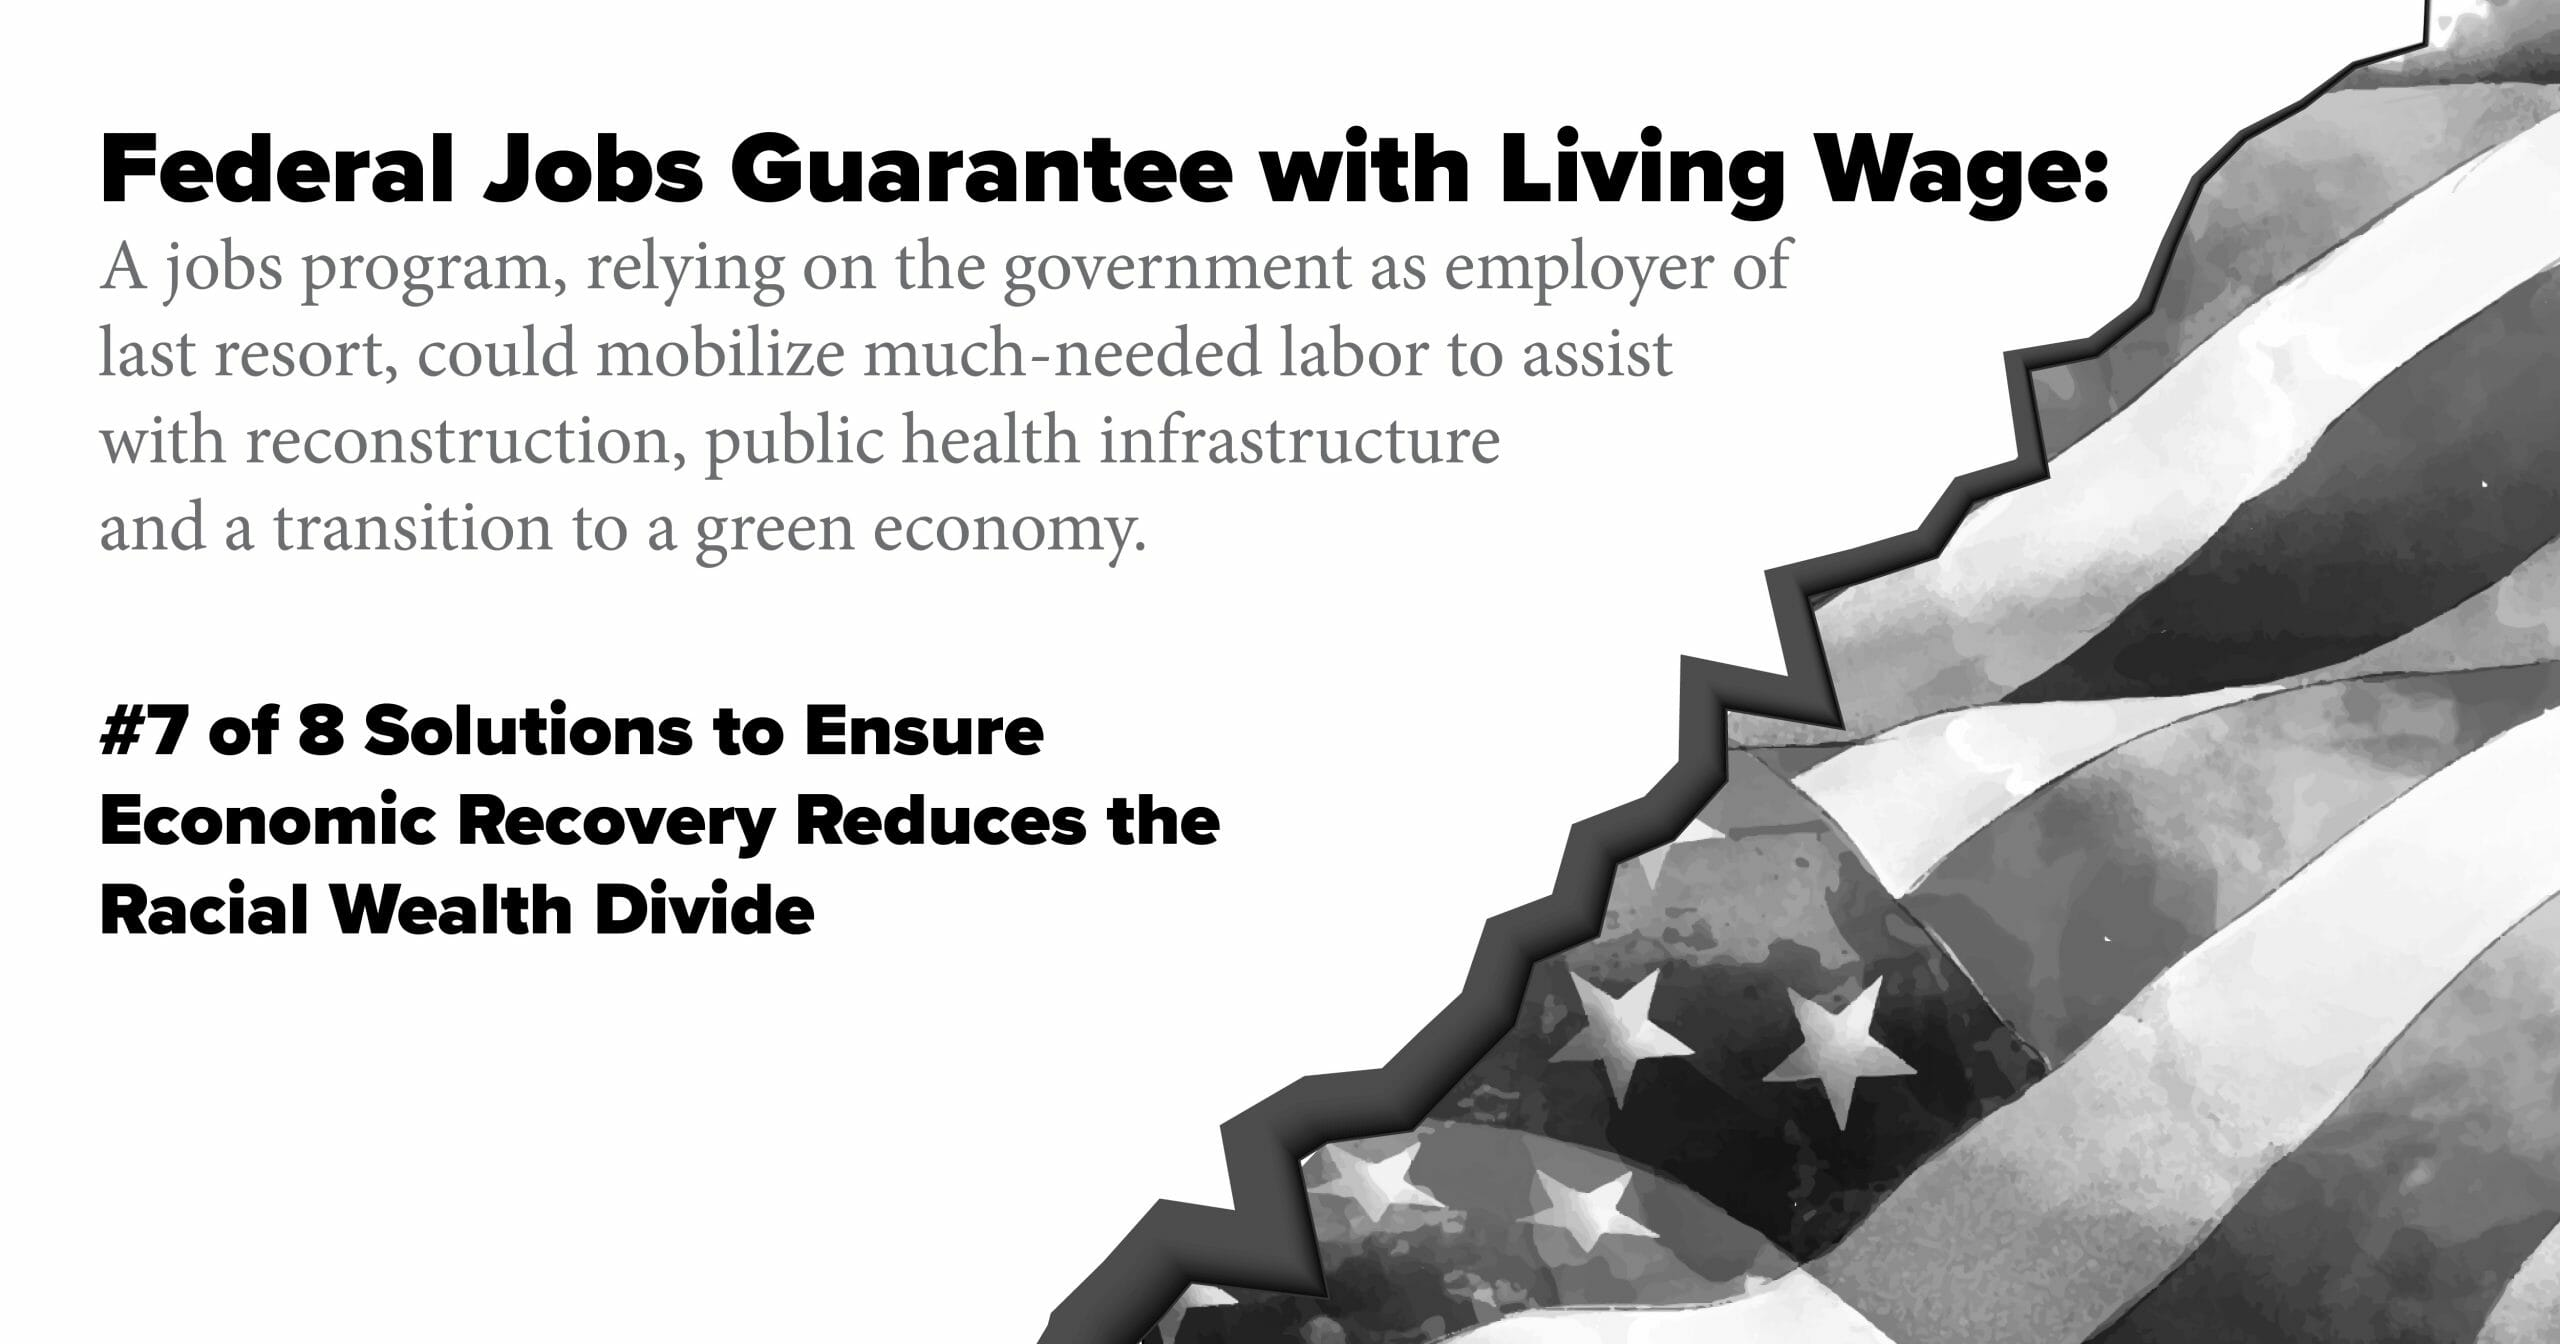 Federal Jobs Guarantee with Living Wage. A jobs program, relying on the government as employer of last resort, could mobilize much-needed labor to assist with reconstruction, public health infrastructure and a transition to a green economy.